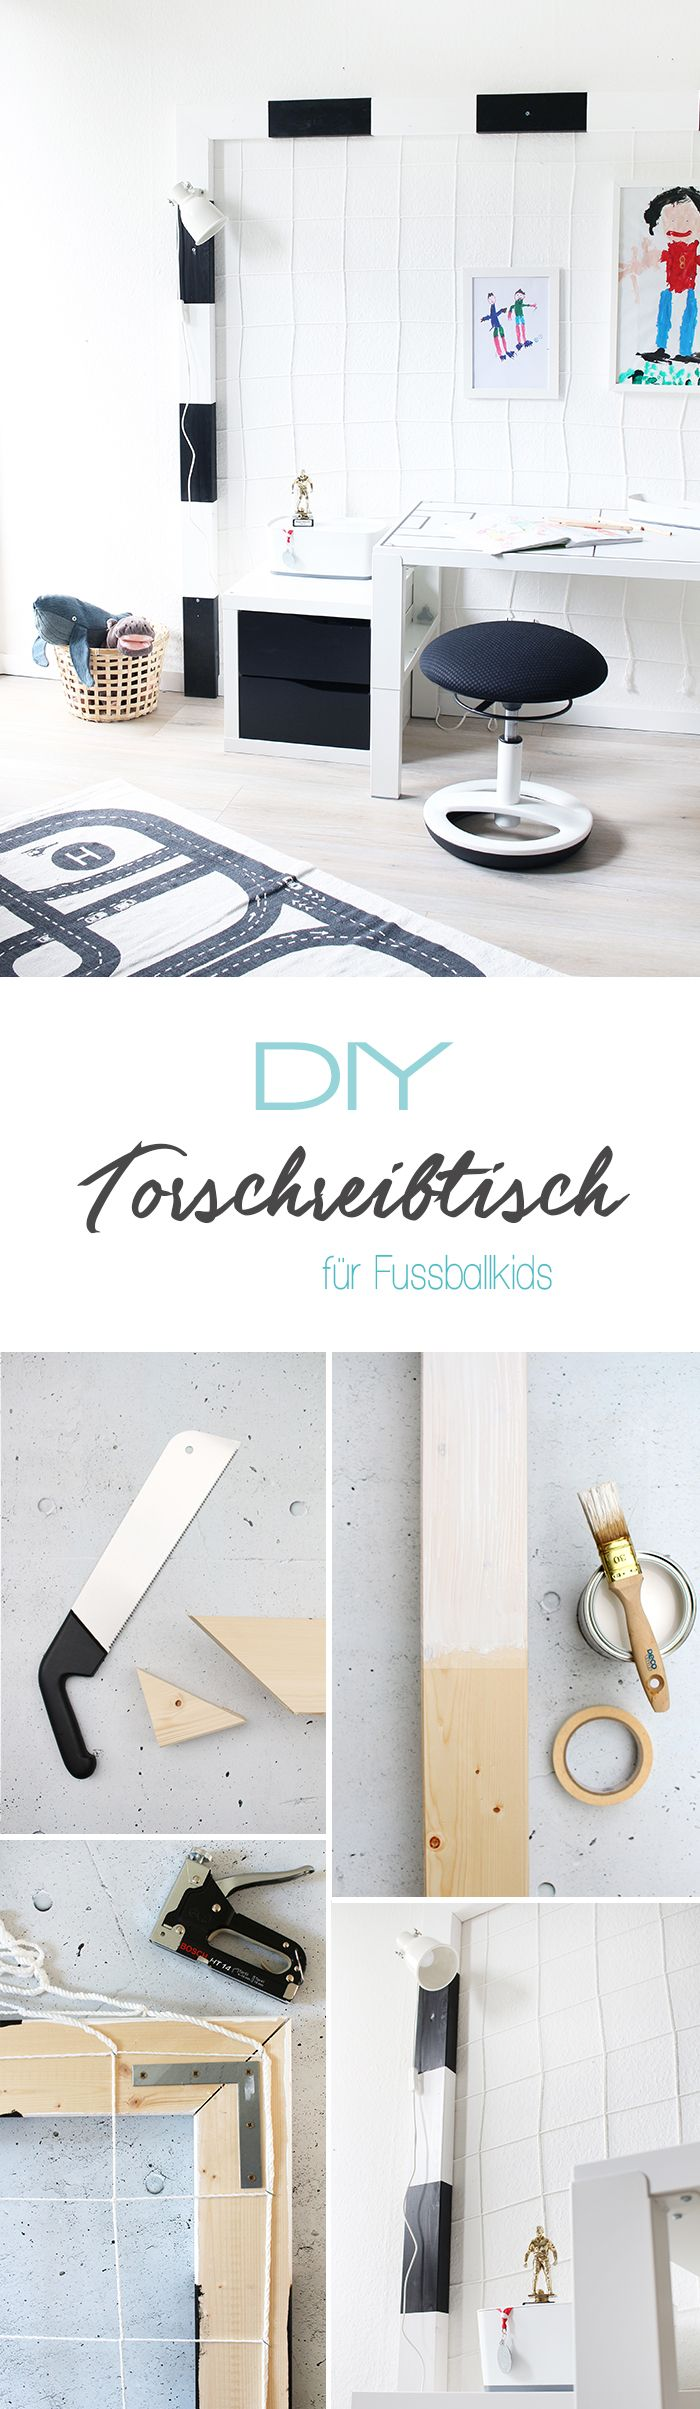 do it yourself schreibtisch f r fussballfans selbst bauen. Black Bedroom Furniture Sets. Home Design Ideas